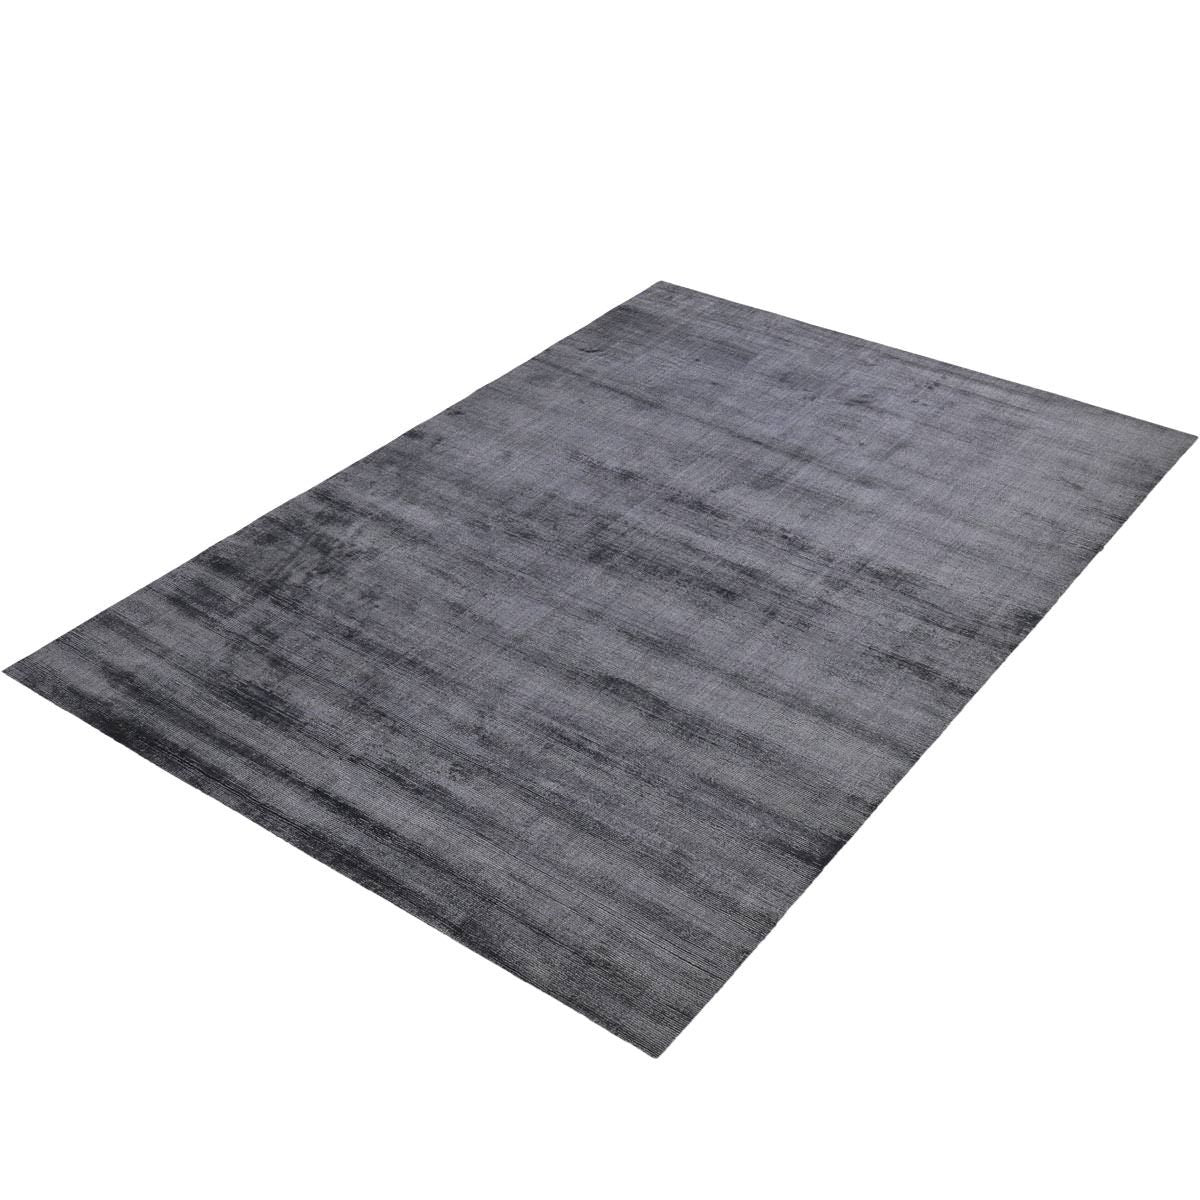 Tuscany Rug 01 Dark Grey 3